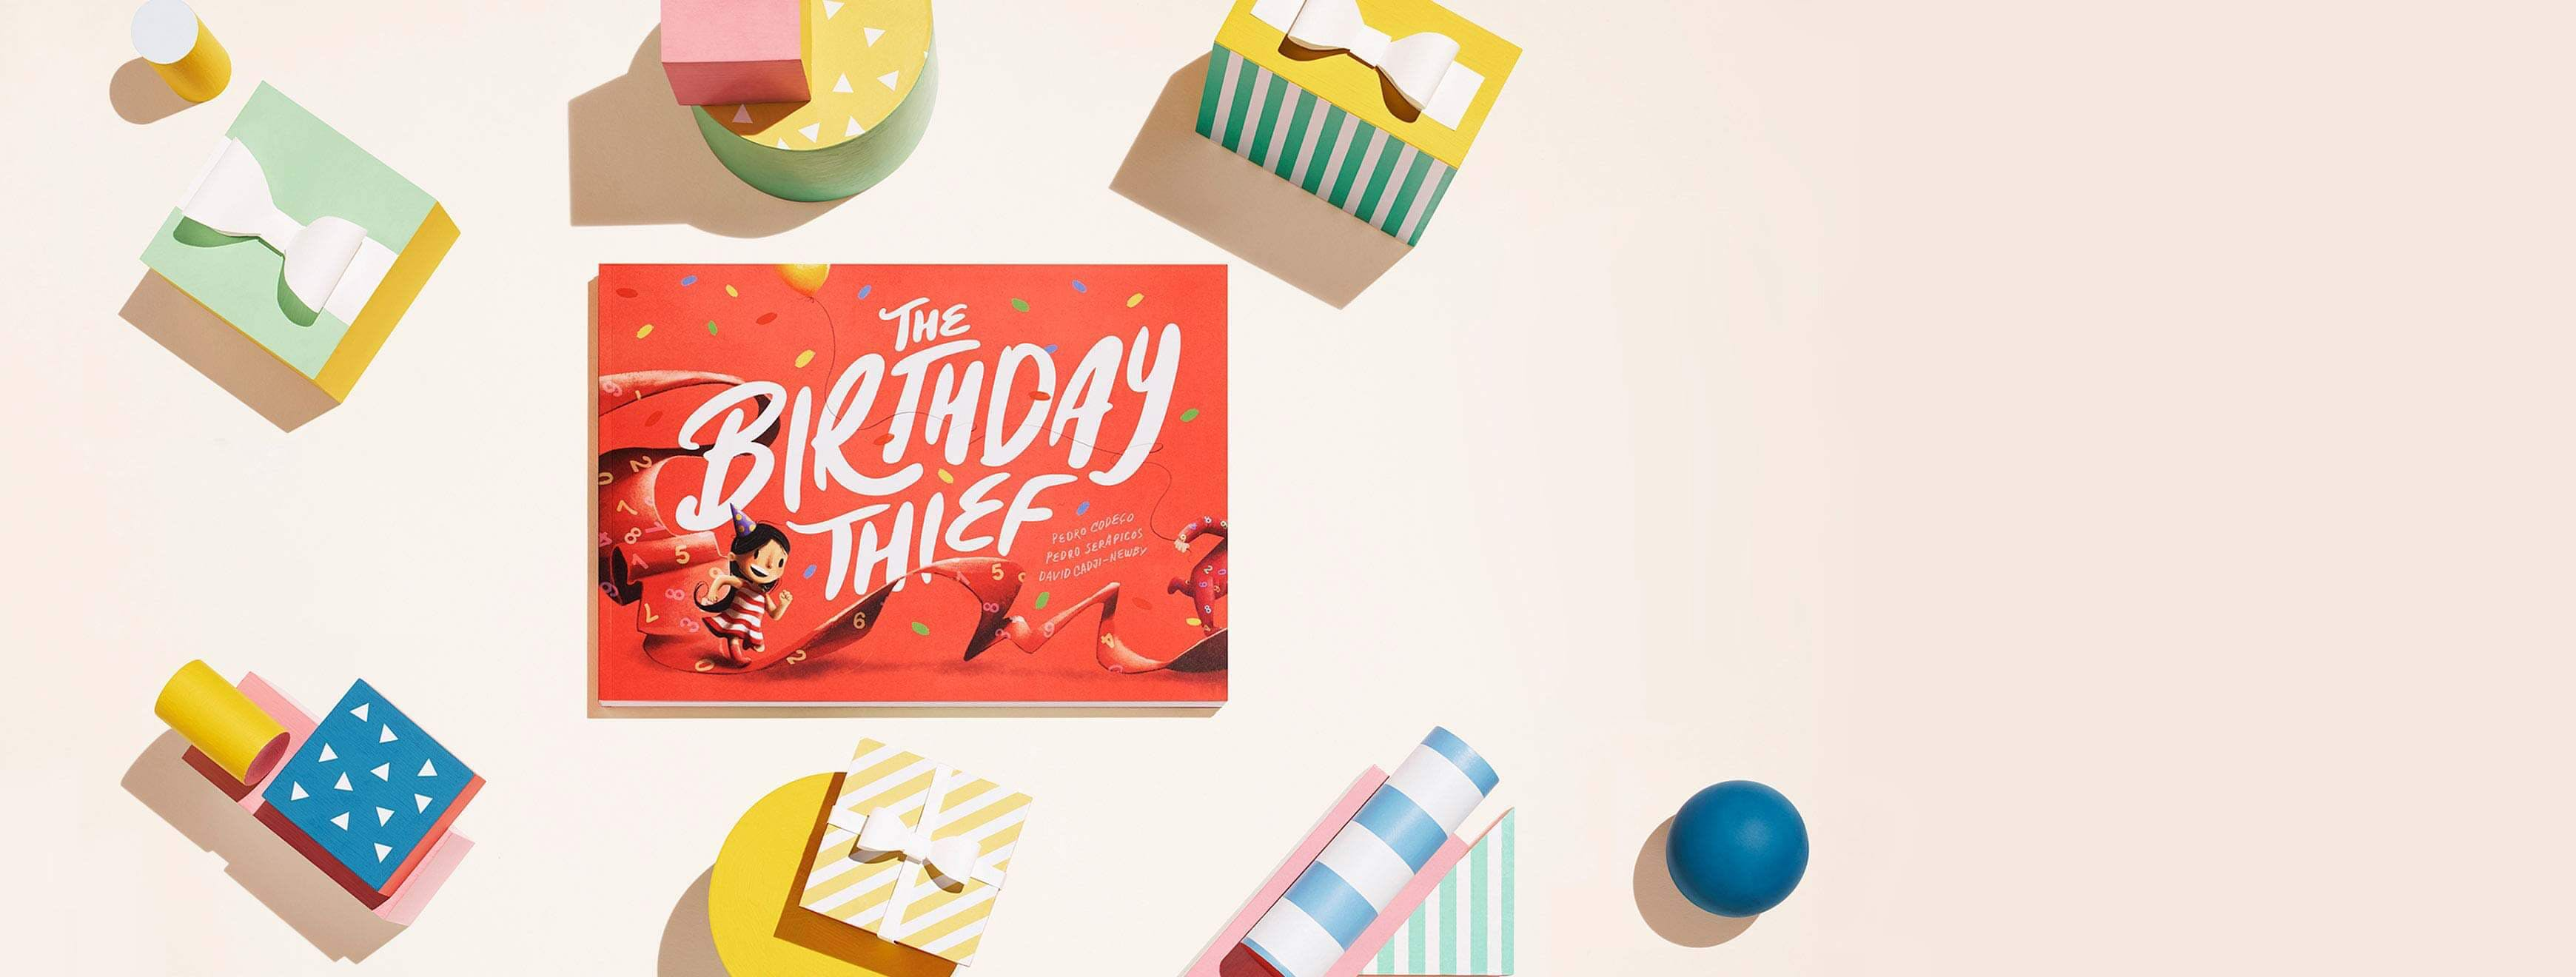 The Birthday Thief book laid on a cream backdrop with children blocks surrounding the book